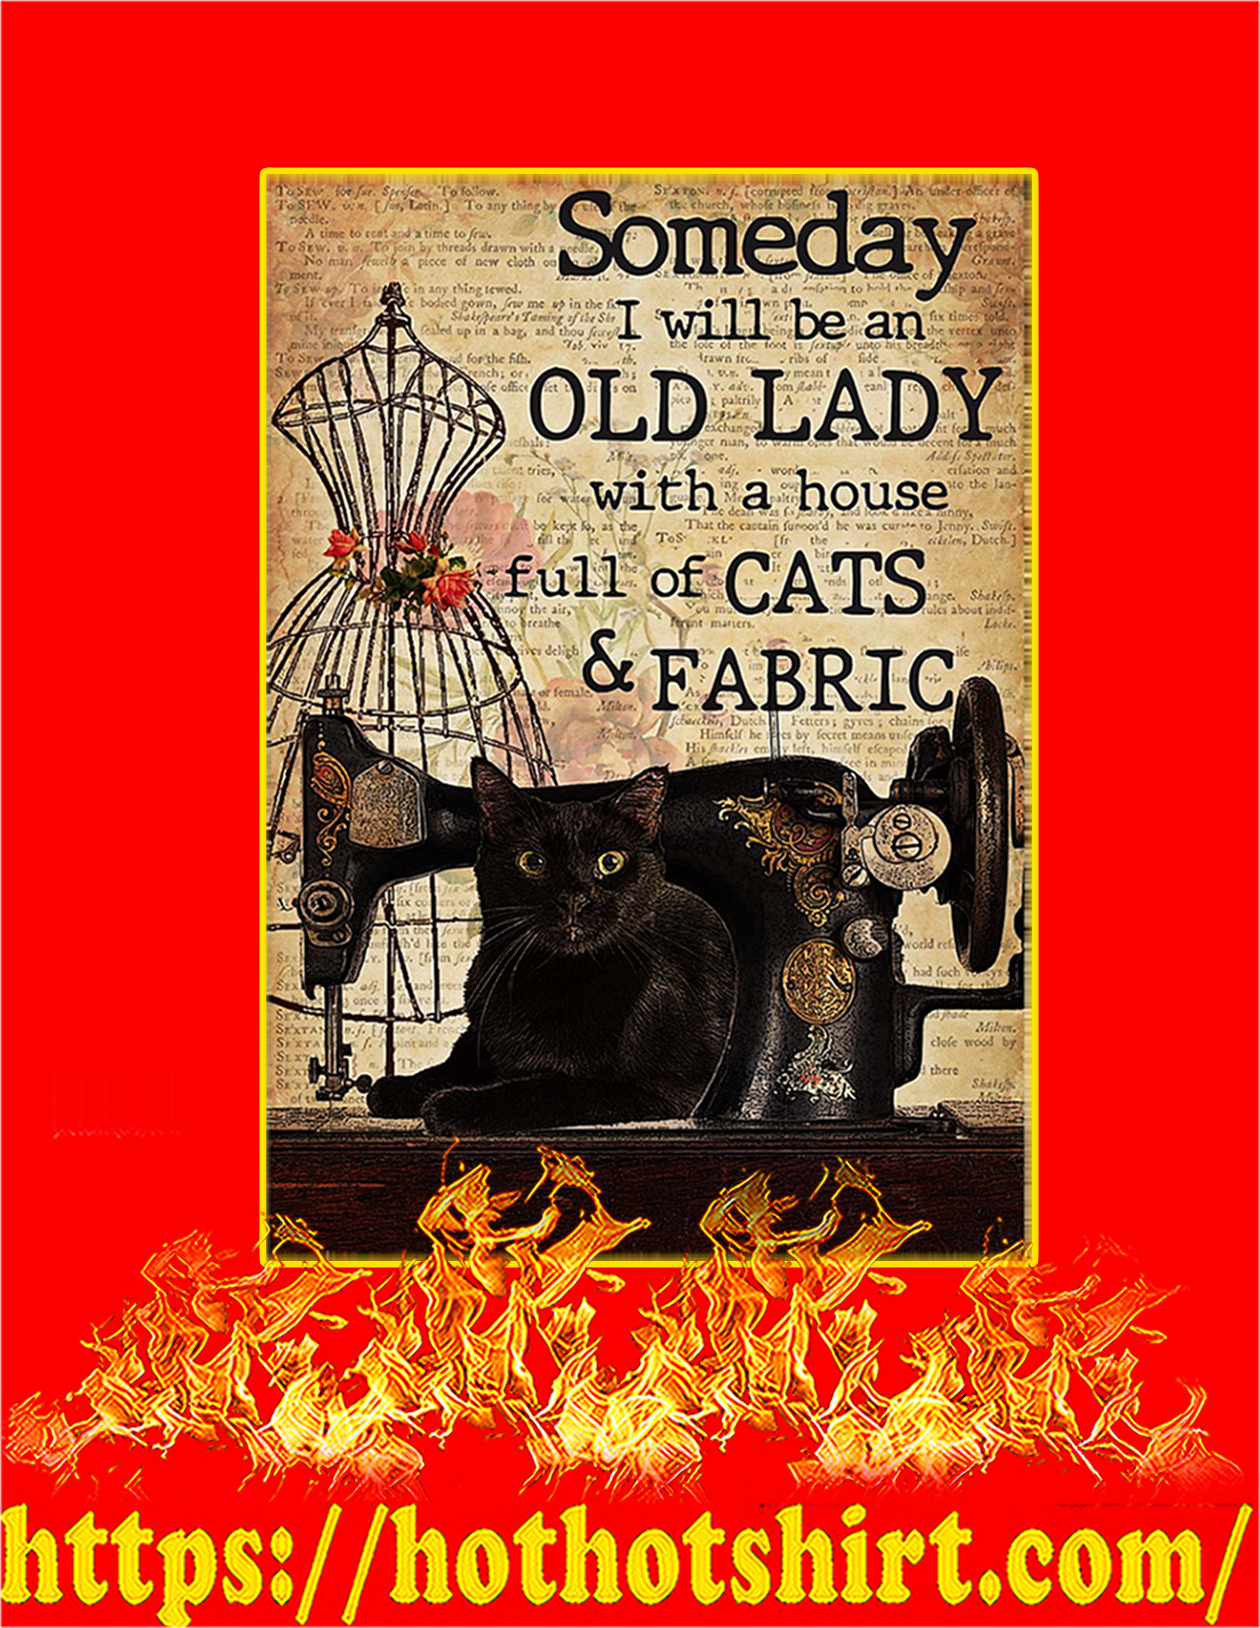 Sewing Someday I will be an old lady with a house full of cats and fabric poster - A2